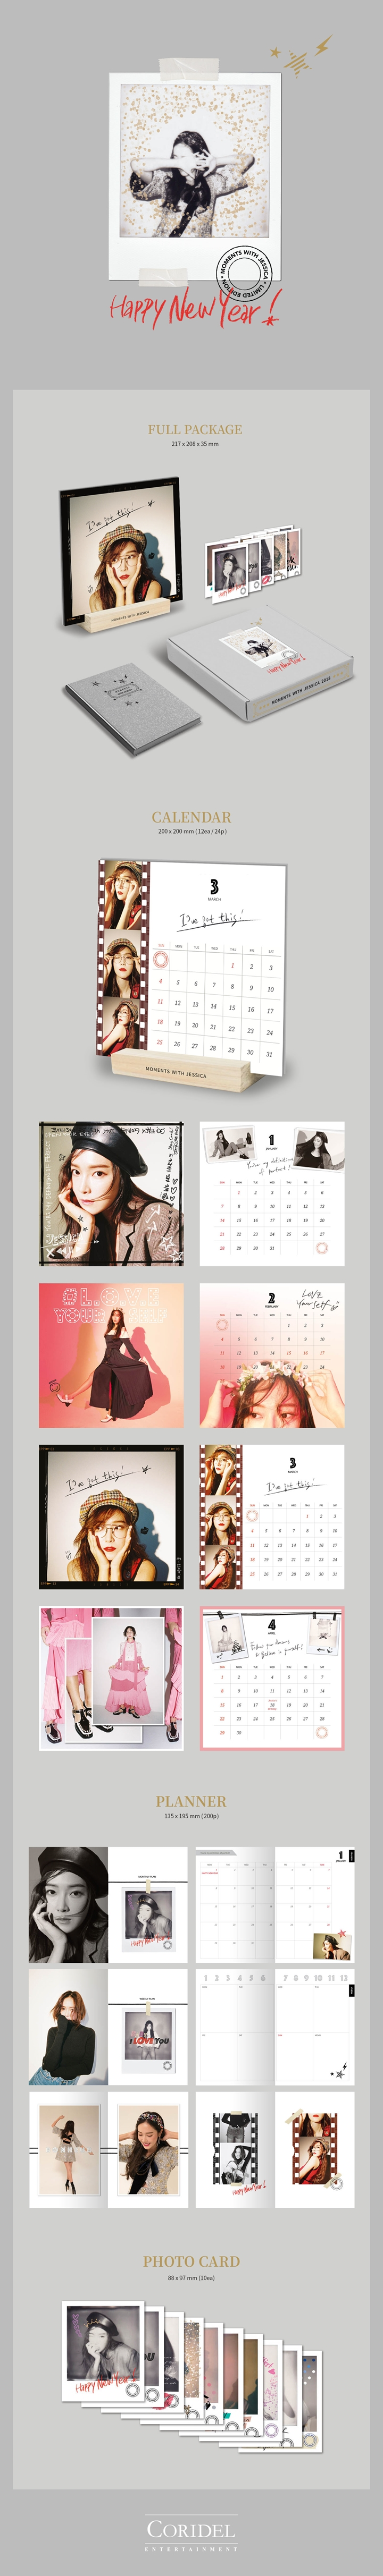 Jessica – 2018 OFFICIAL SEASON S GREETINGS